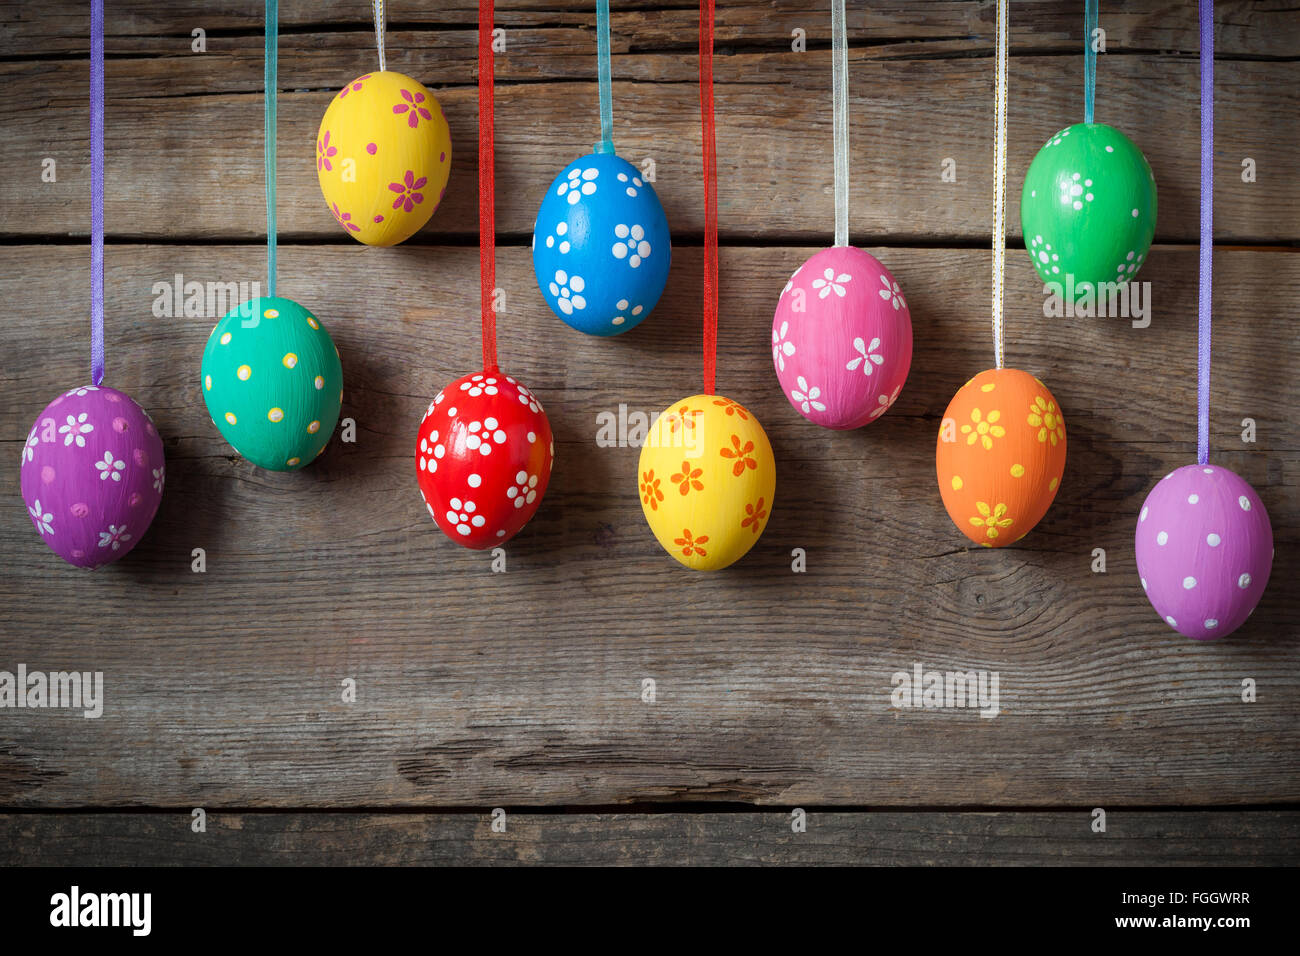 Hanging colorful eggs on rustic wooden background Stock Photo